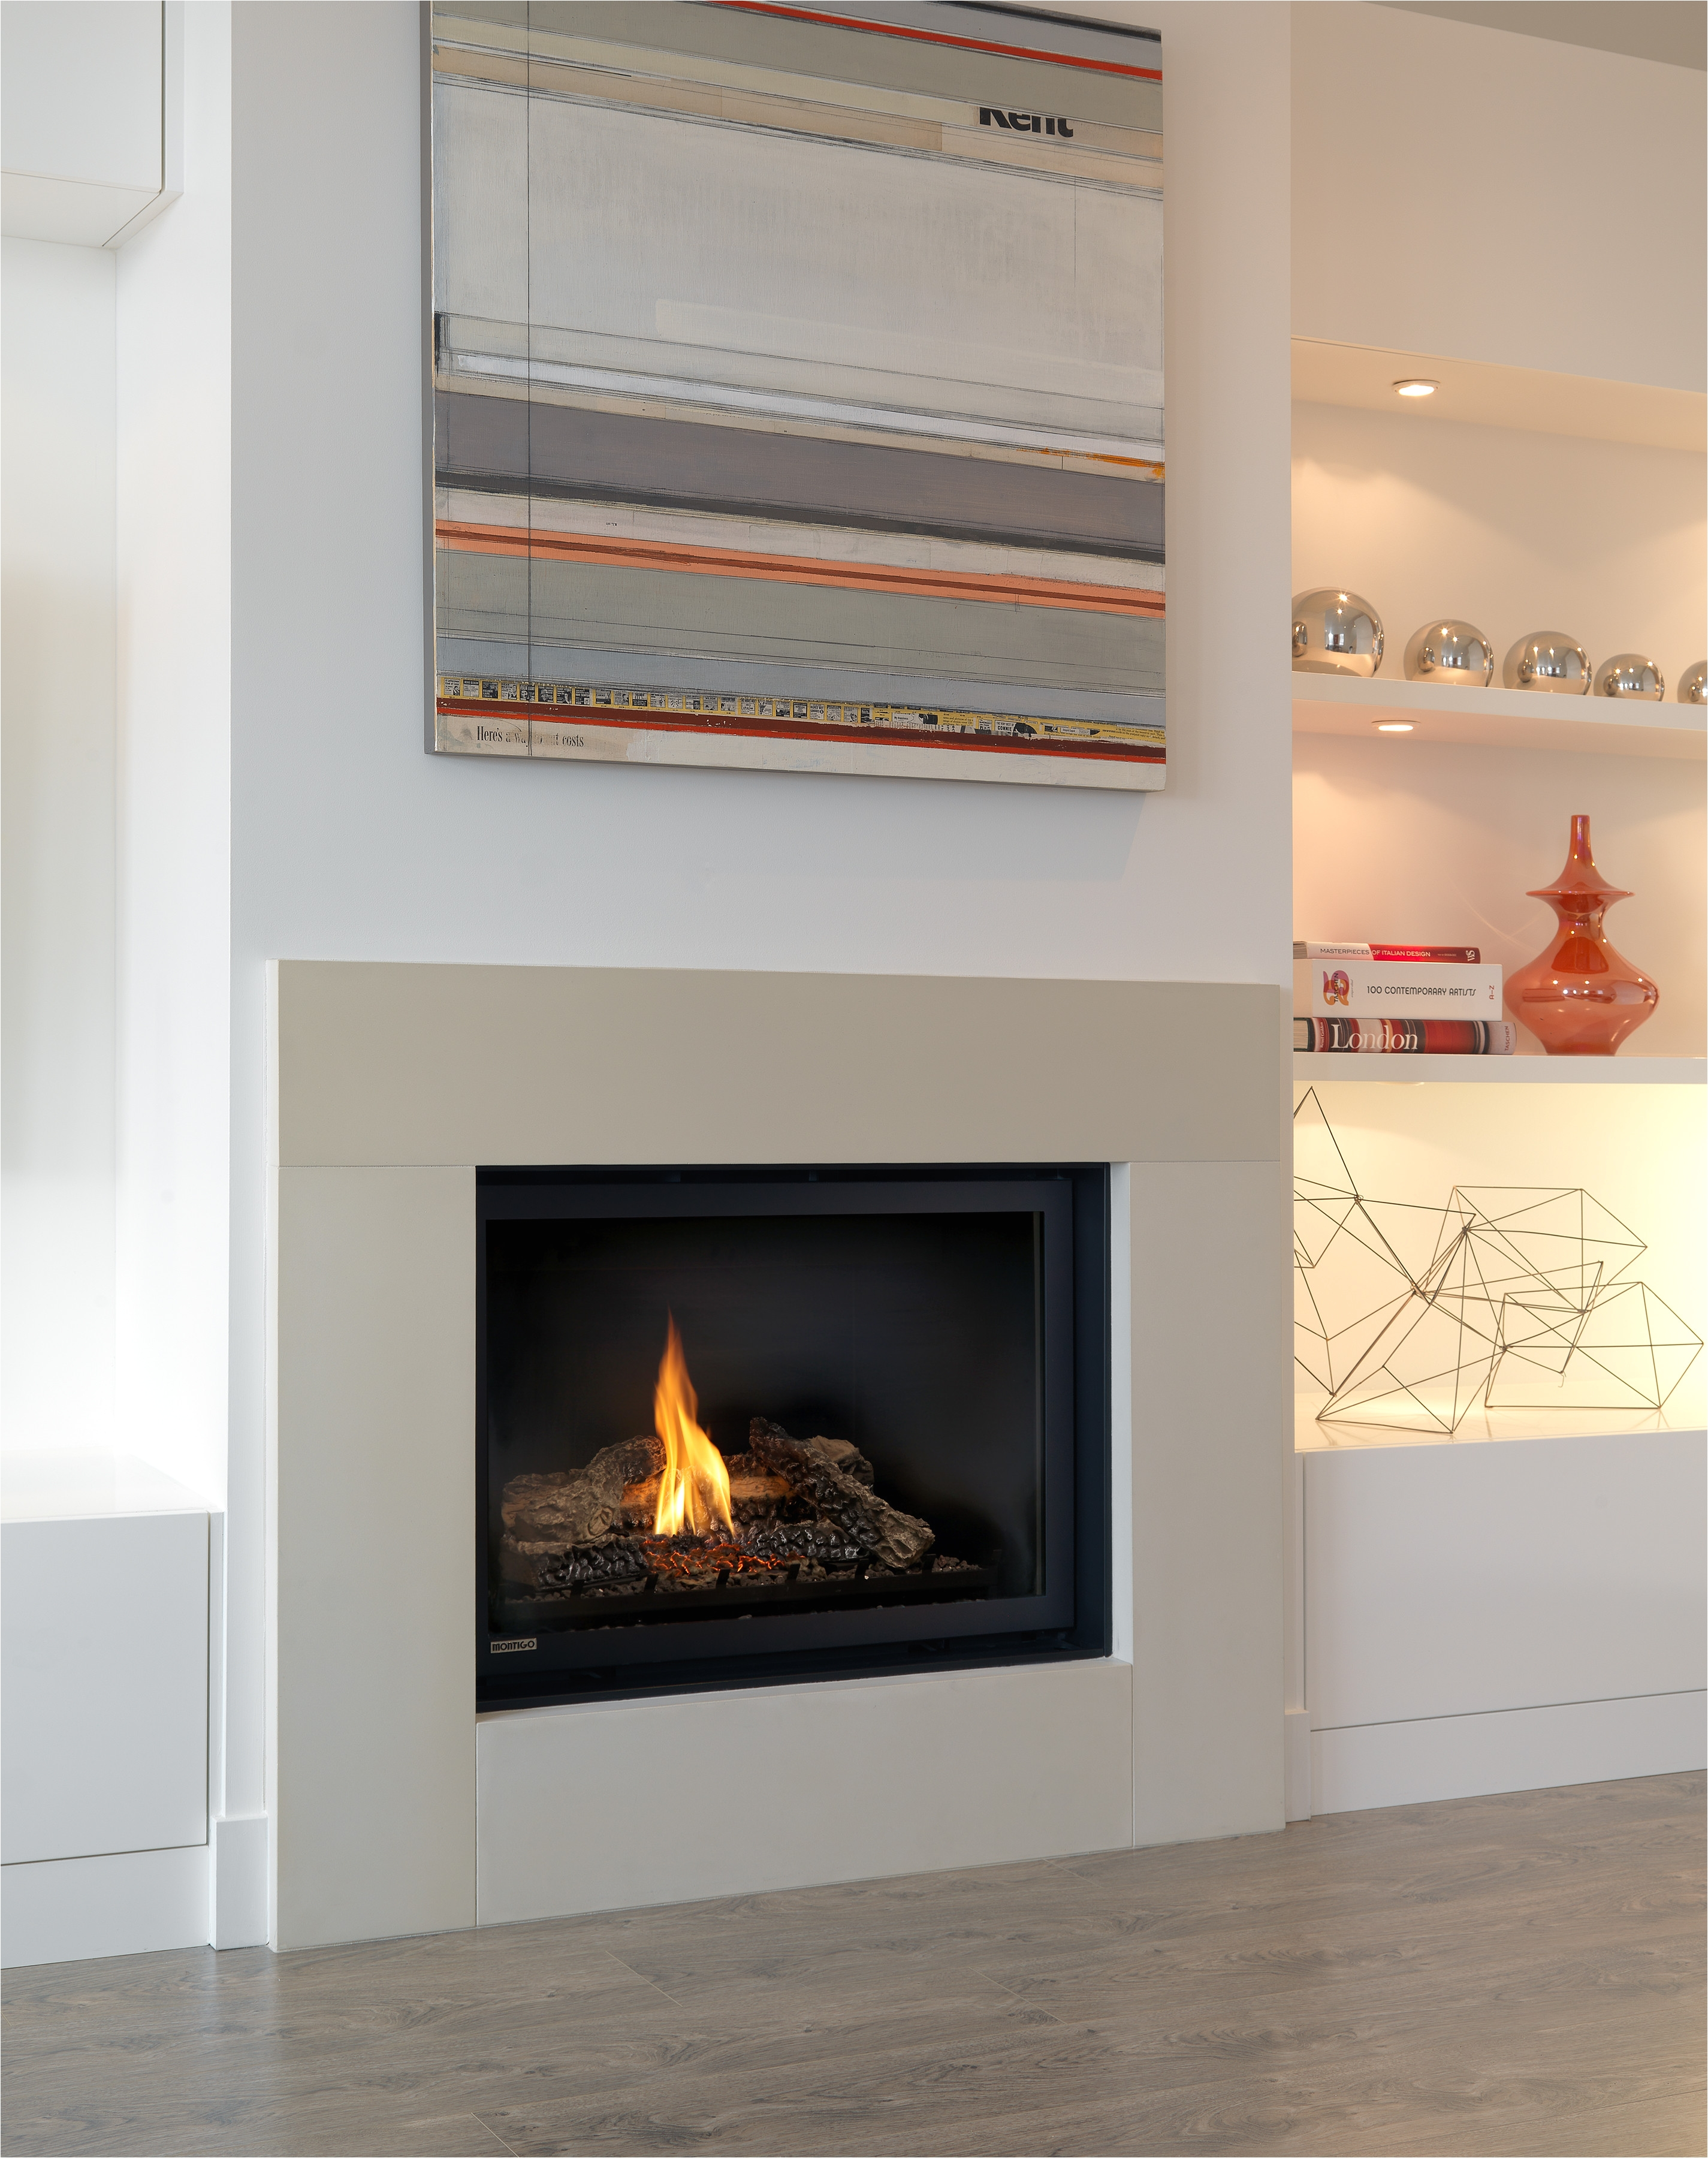 direct vent gas fireplace stores near me zero vent gas fireplaces awesome montigo h34df direct vent gas of direct vent gas fireplace stores near me